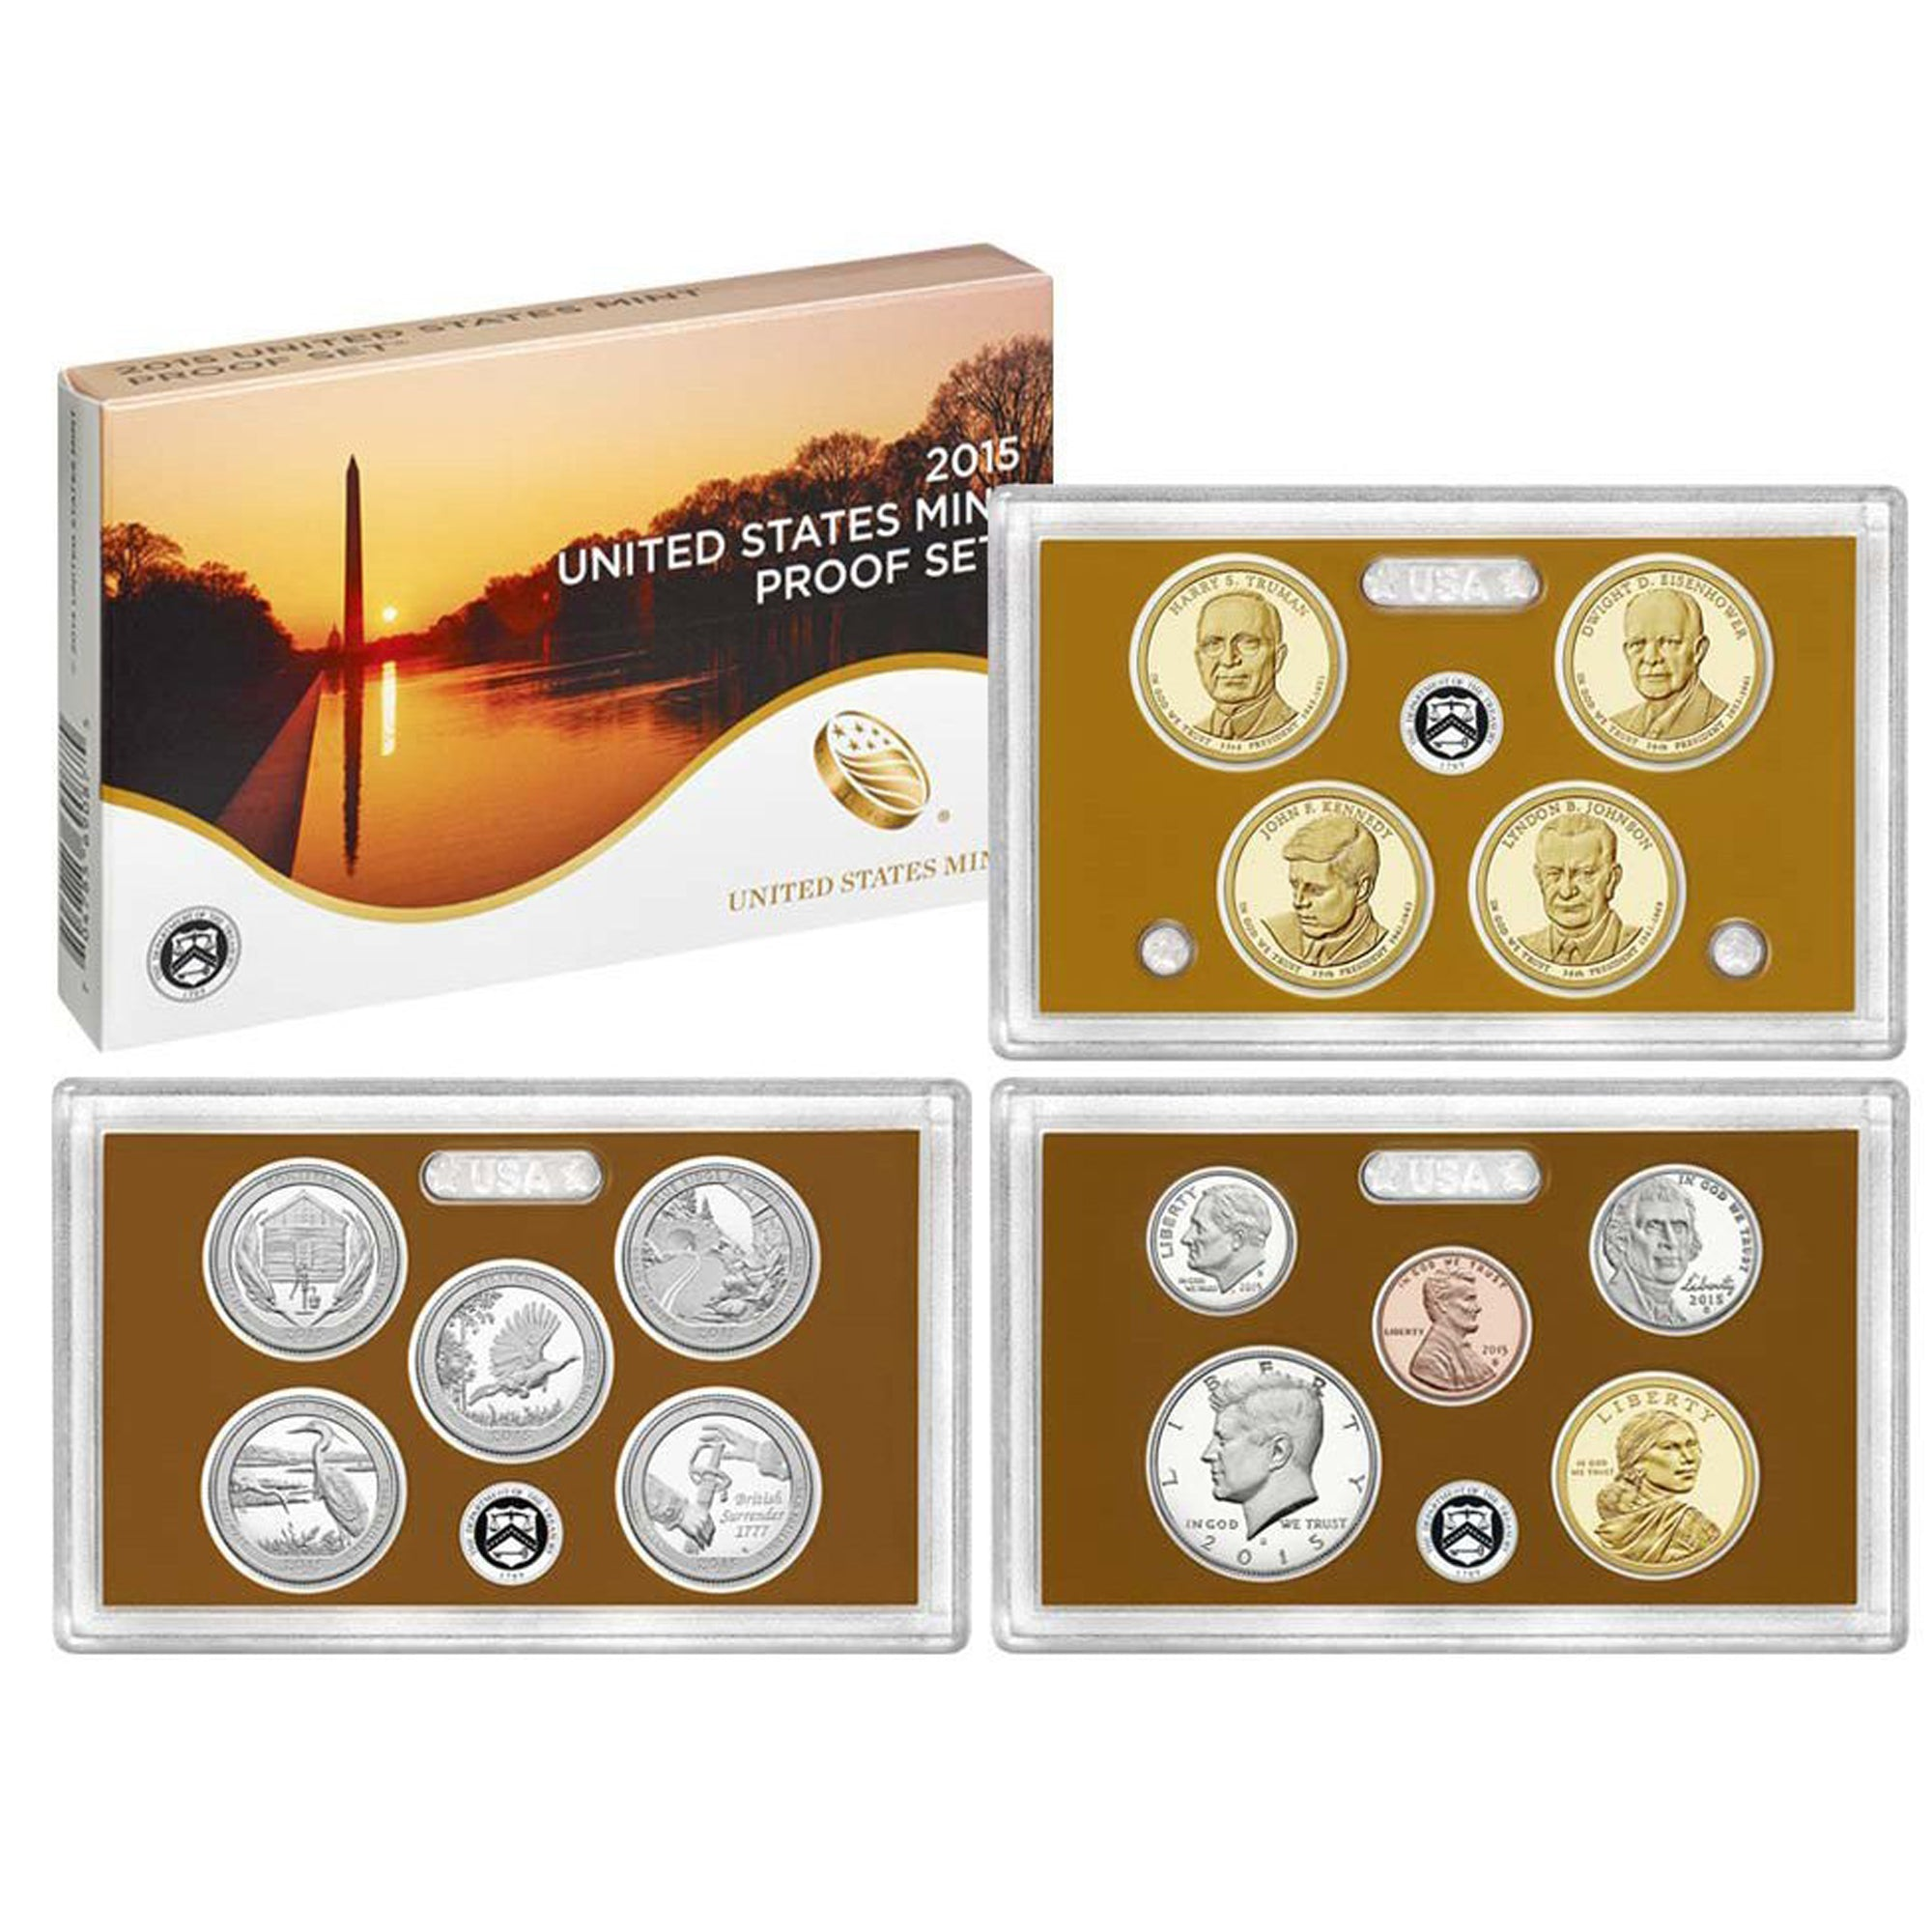 2015 Proof set 10 Pack CN-Clad Kennedy, Presidential Dollar, State quarters - (OGP) 140 coins